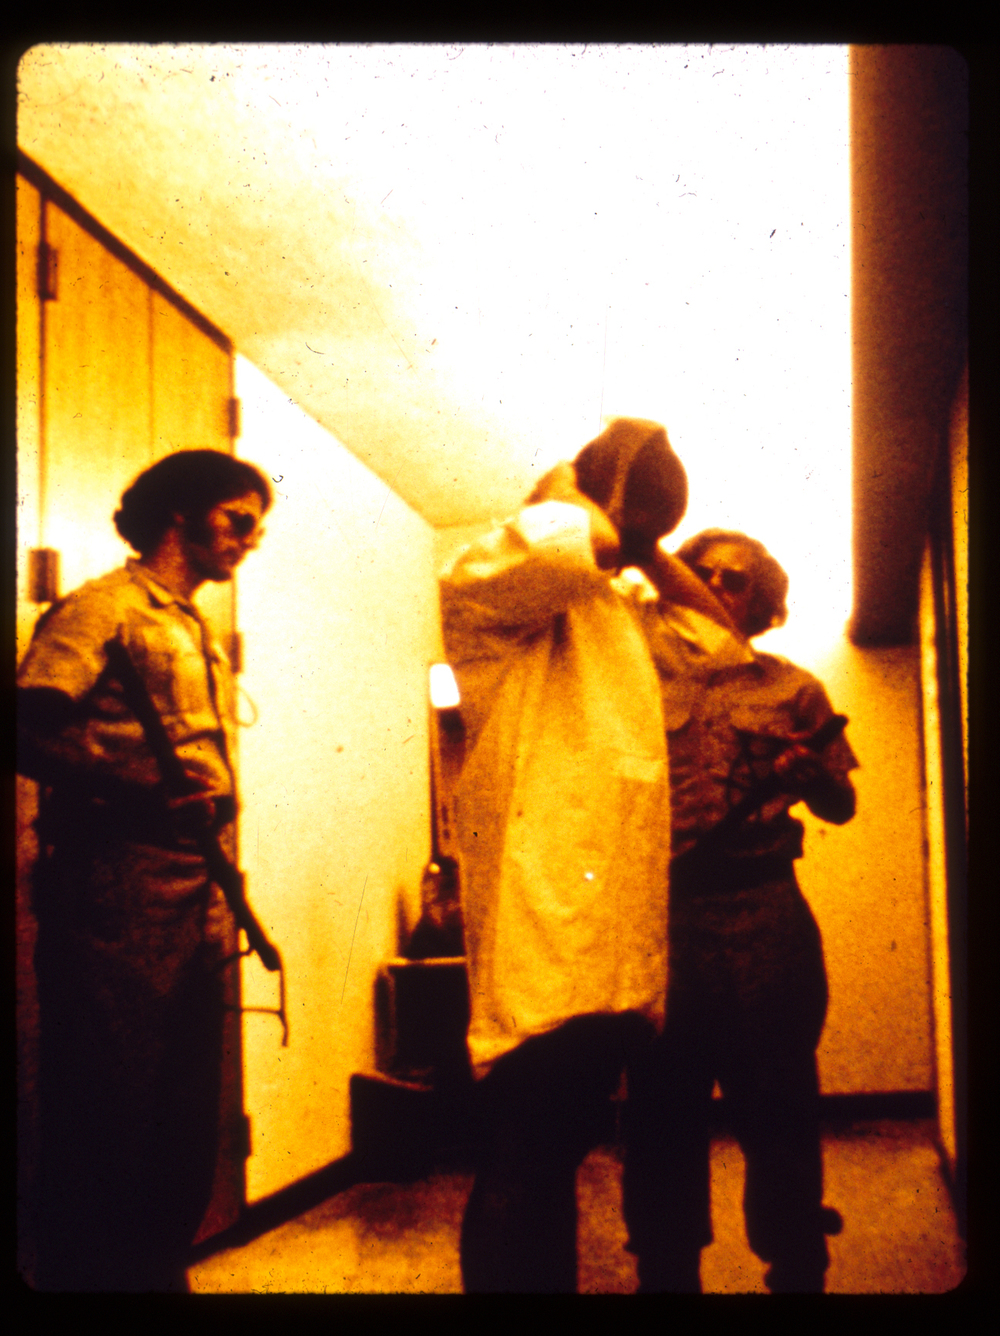 Prisoner covering hair with stocking cap